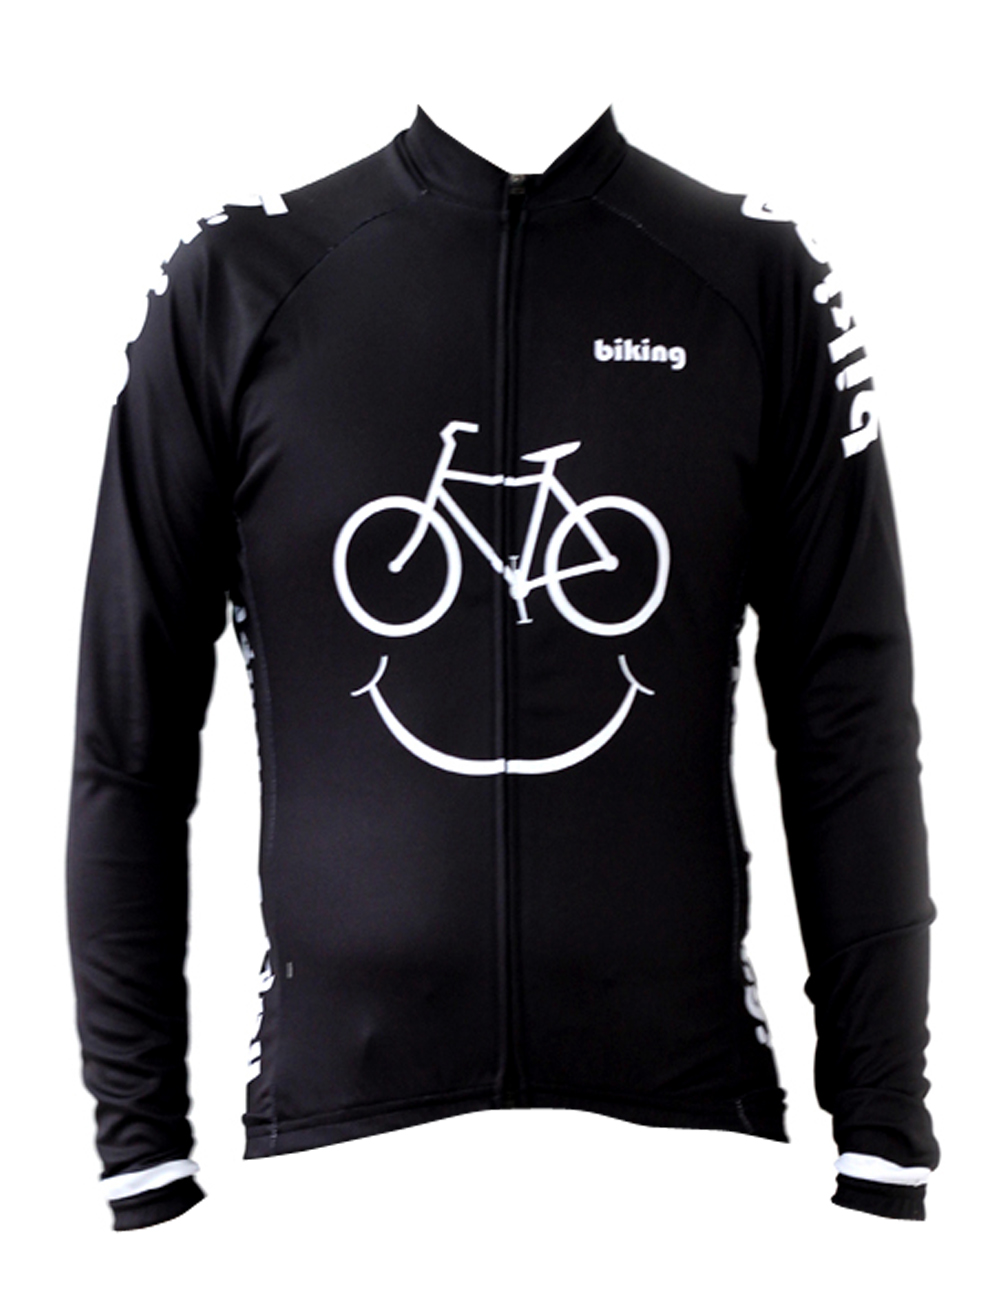 Black Smile Bikes Cycling shirt bike equipment Mens Long Sleeve Cycling Jersey Cycling Clothing Bike Shirt Size 2XS To 6XL ILPAL new 17 black red spider mens breathable bike clothing polyester autumn long sleeve cycling jerseys size 2xs to 6xl